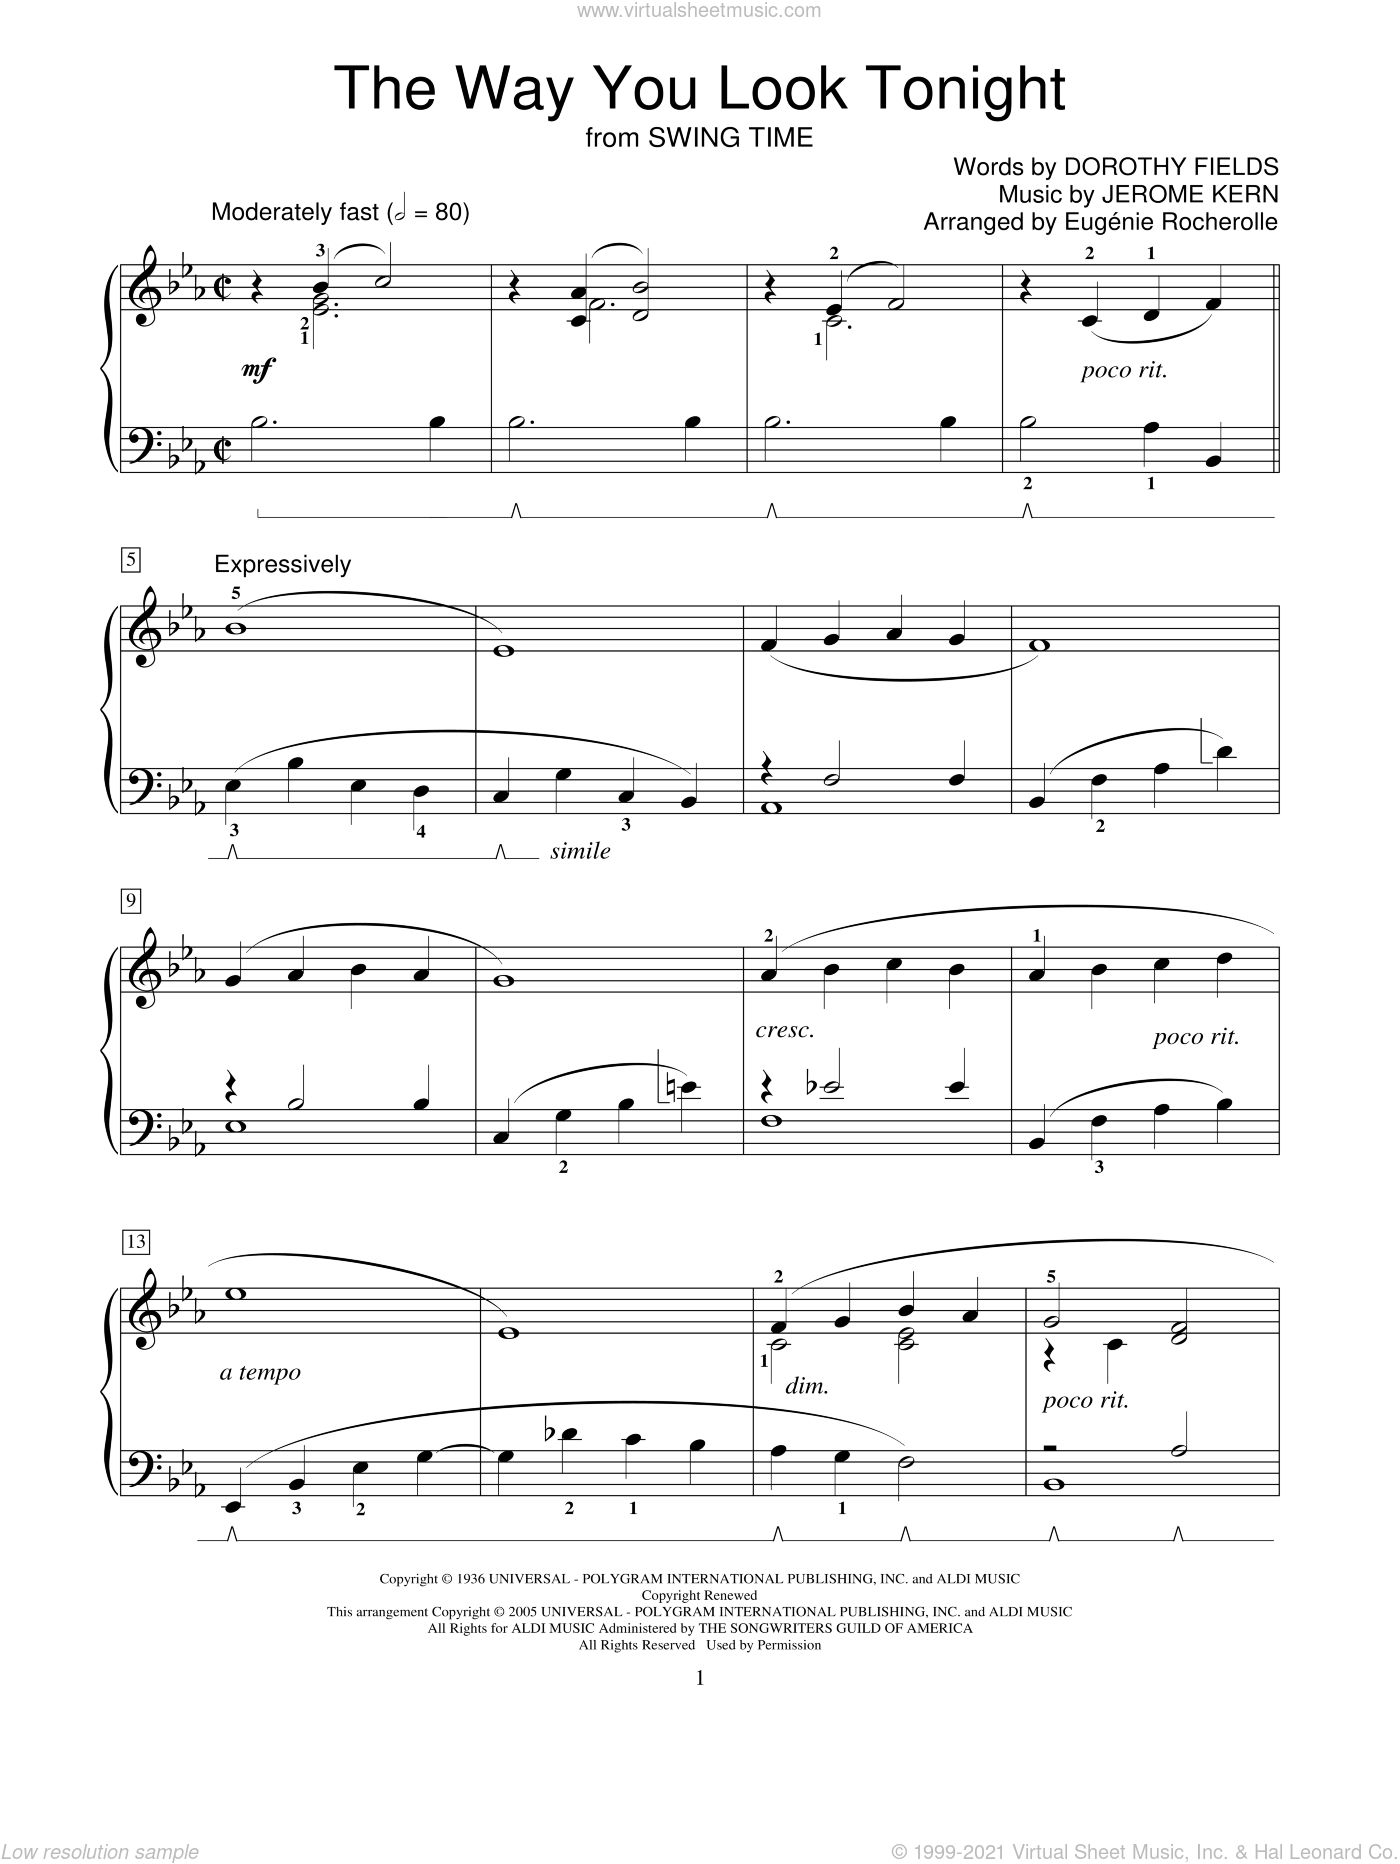 The Way You Look Tonight sheet music for piano solo (elementary) by Dorothy Fields, Miscellaneous and Jerome Kern. Score Image Preview.